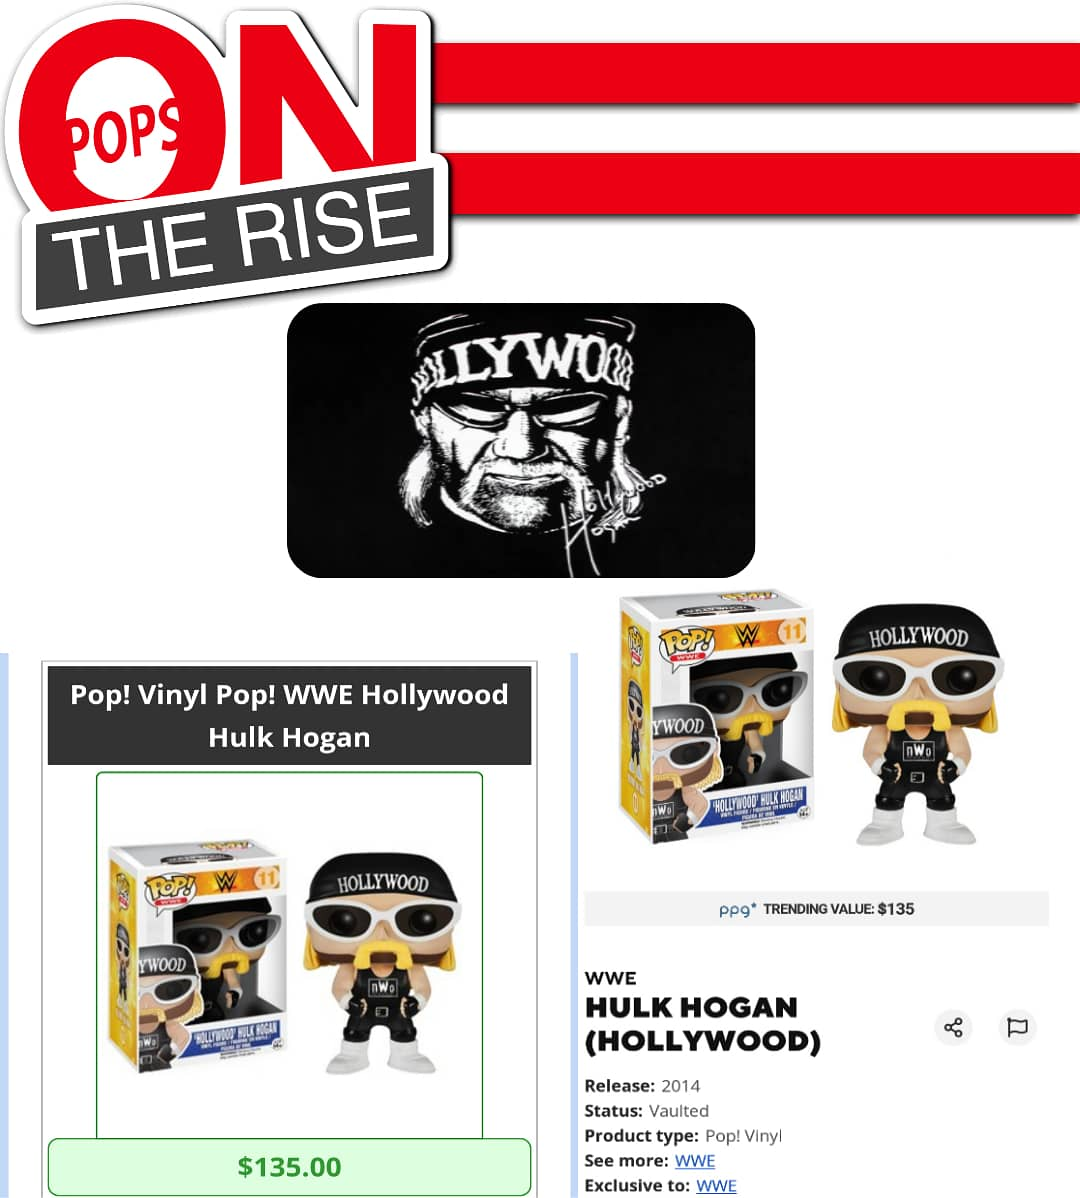 "#Popsontherise WWE: Hollywood Hulk Hogan  Current Value: $135 . ""To all the NWO fans that worship Hollywood Hogan, welcome back to the house that Hollywood built& as the sign says On the 7th Day God created Hollywood"" One of the greatest wrestlers One of the greatest factions NWOpic.twitter.com/0wb8xIXLaq"